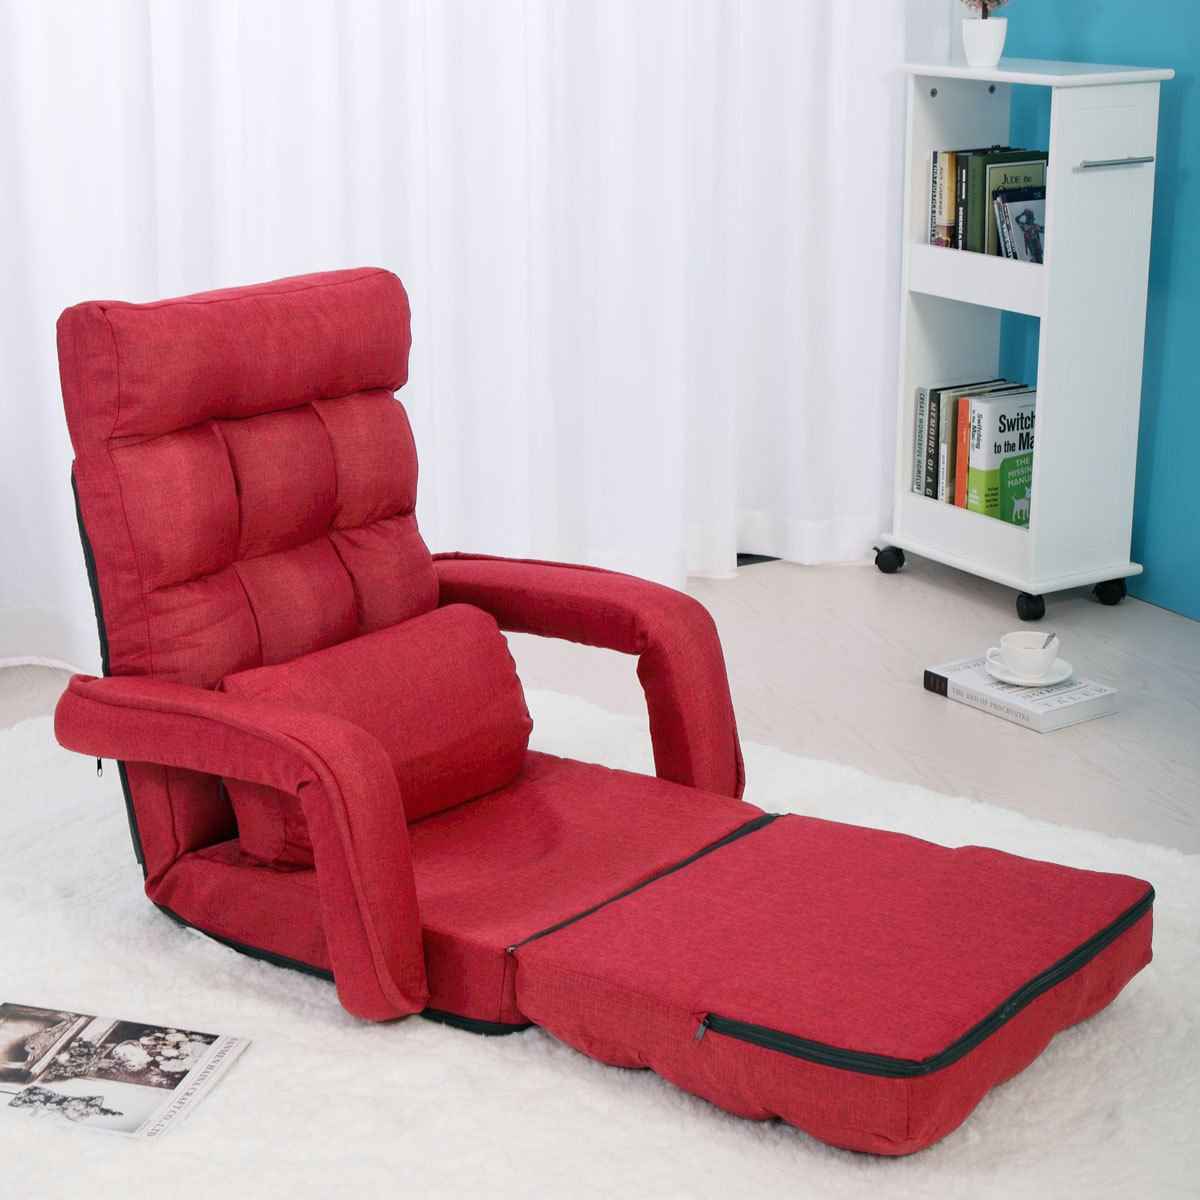 Buy Jaxpety Adjustable Folding Leisure Sofa Bed Video Gaming